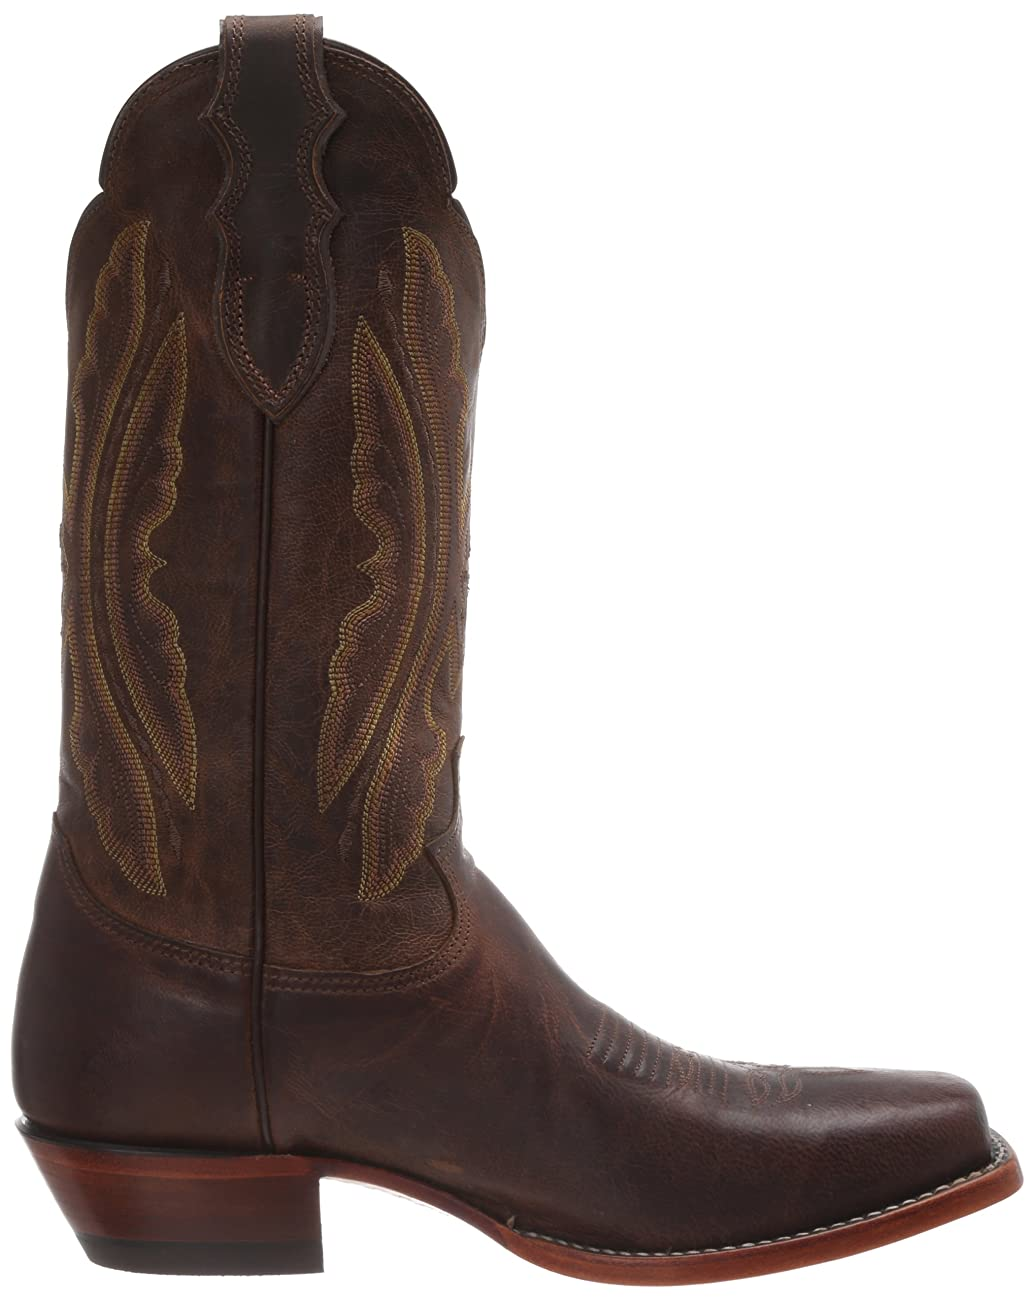 Justin Boots Men's Classic Western Boot 5